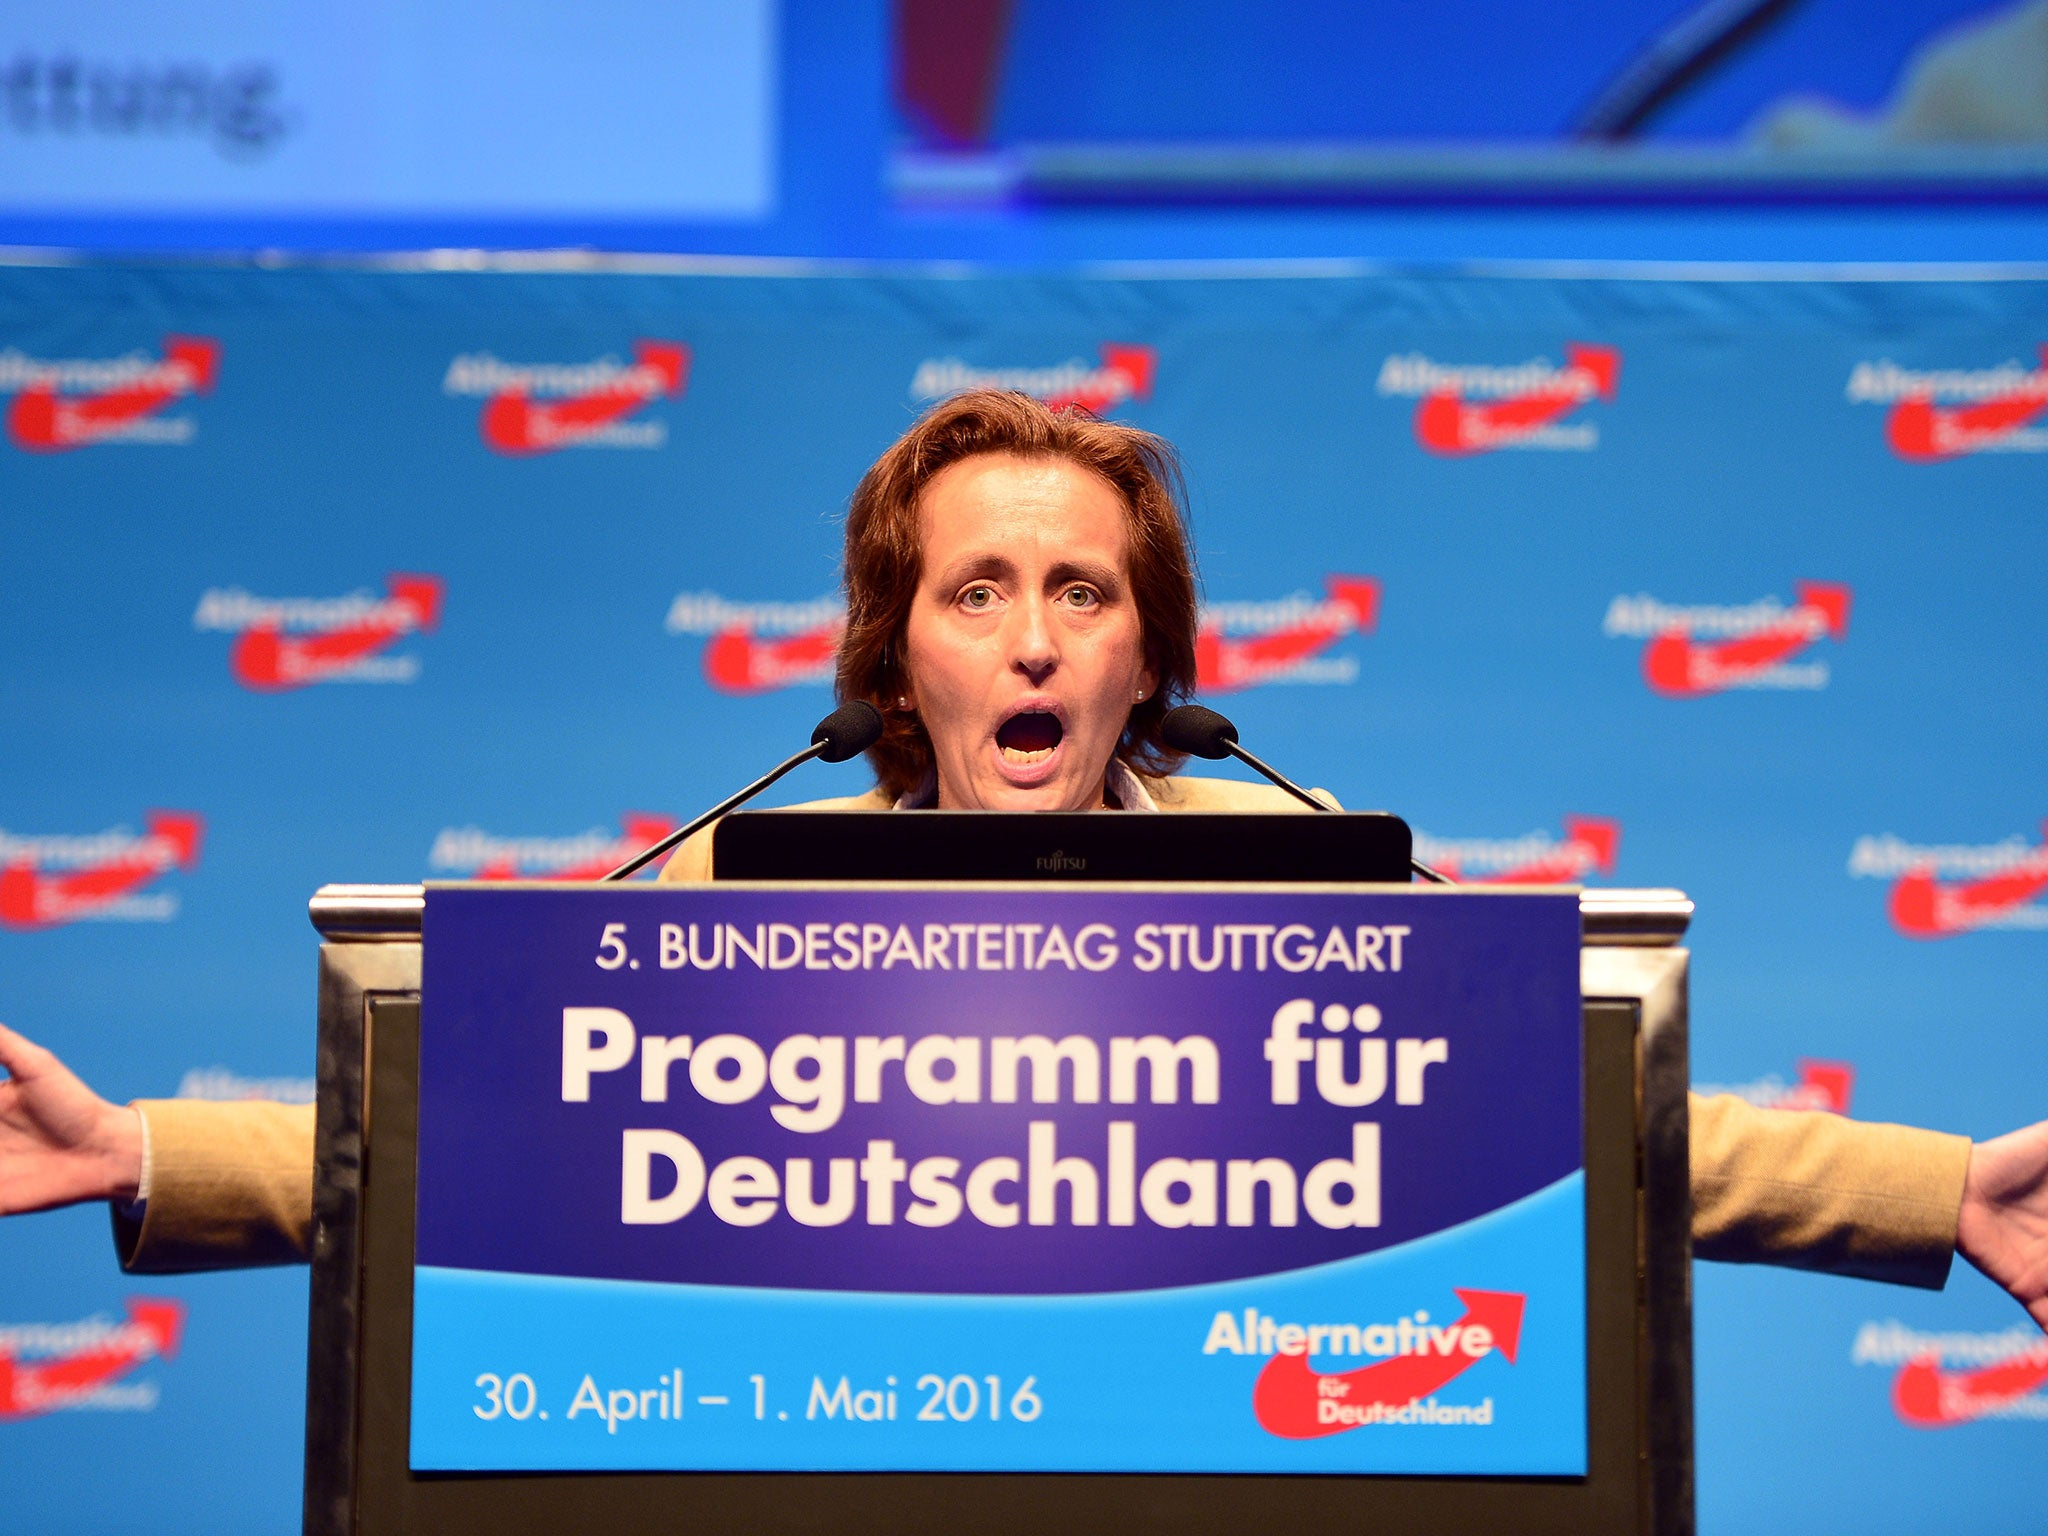 https://static.independent.co.uk/s3fs-public/thumbnails/image/2016/05/02/00/beatrix-von-storch-afd-getty.jpg